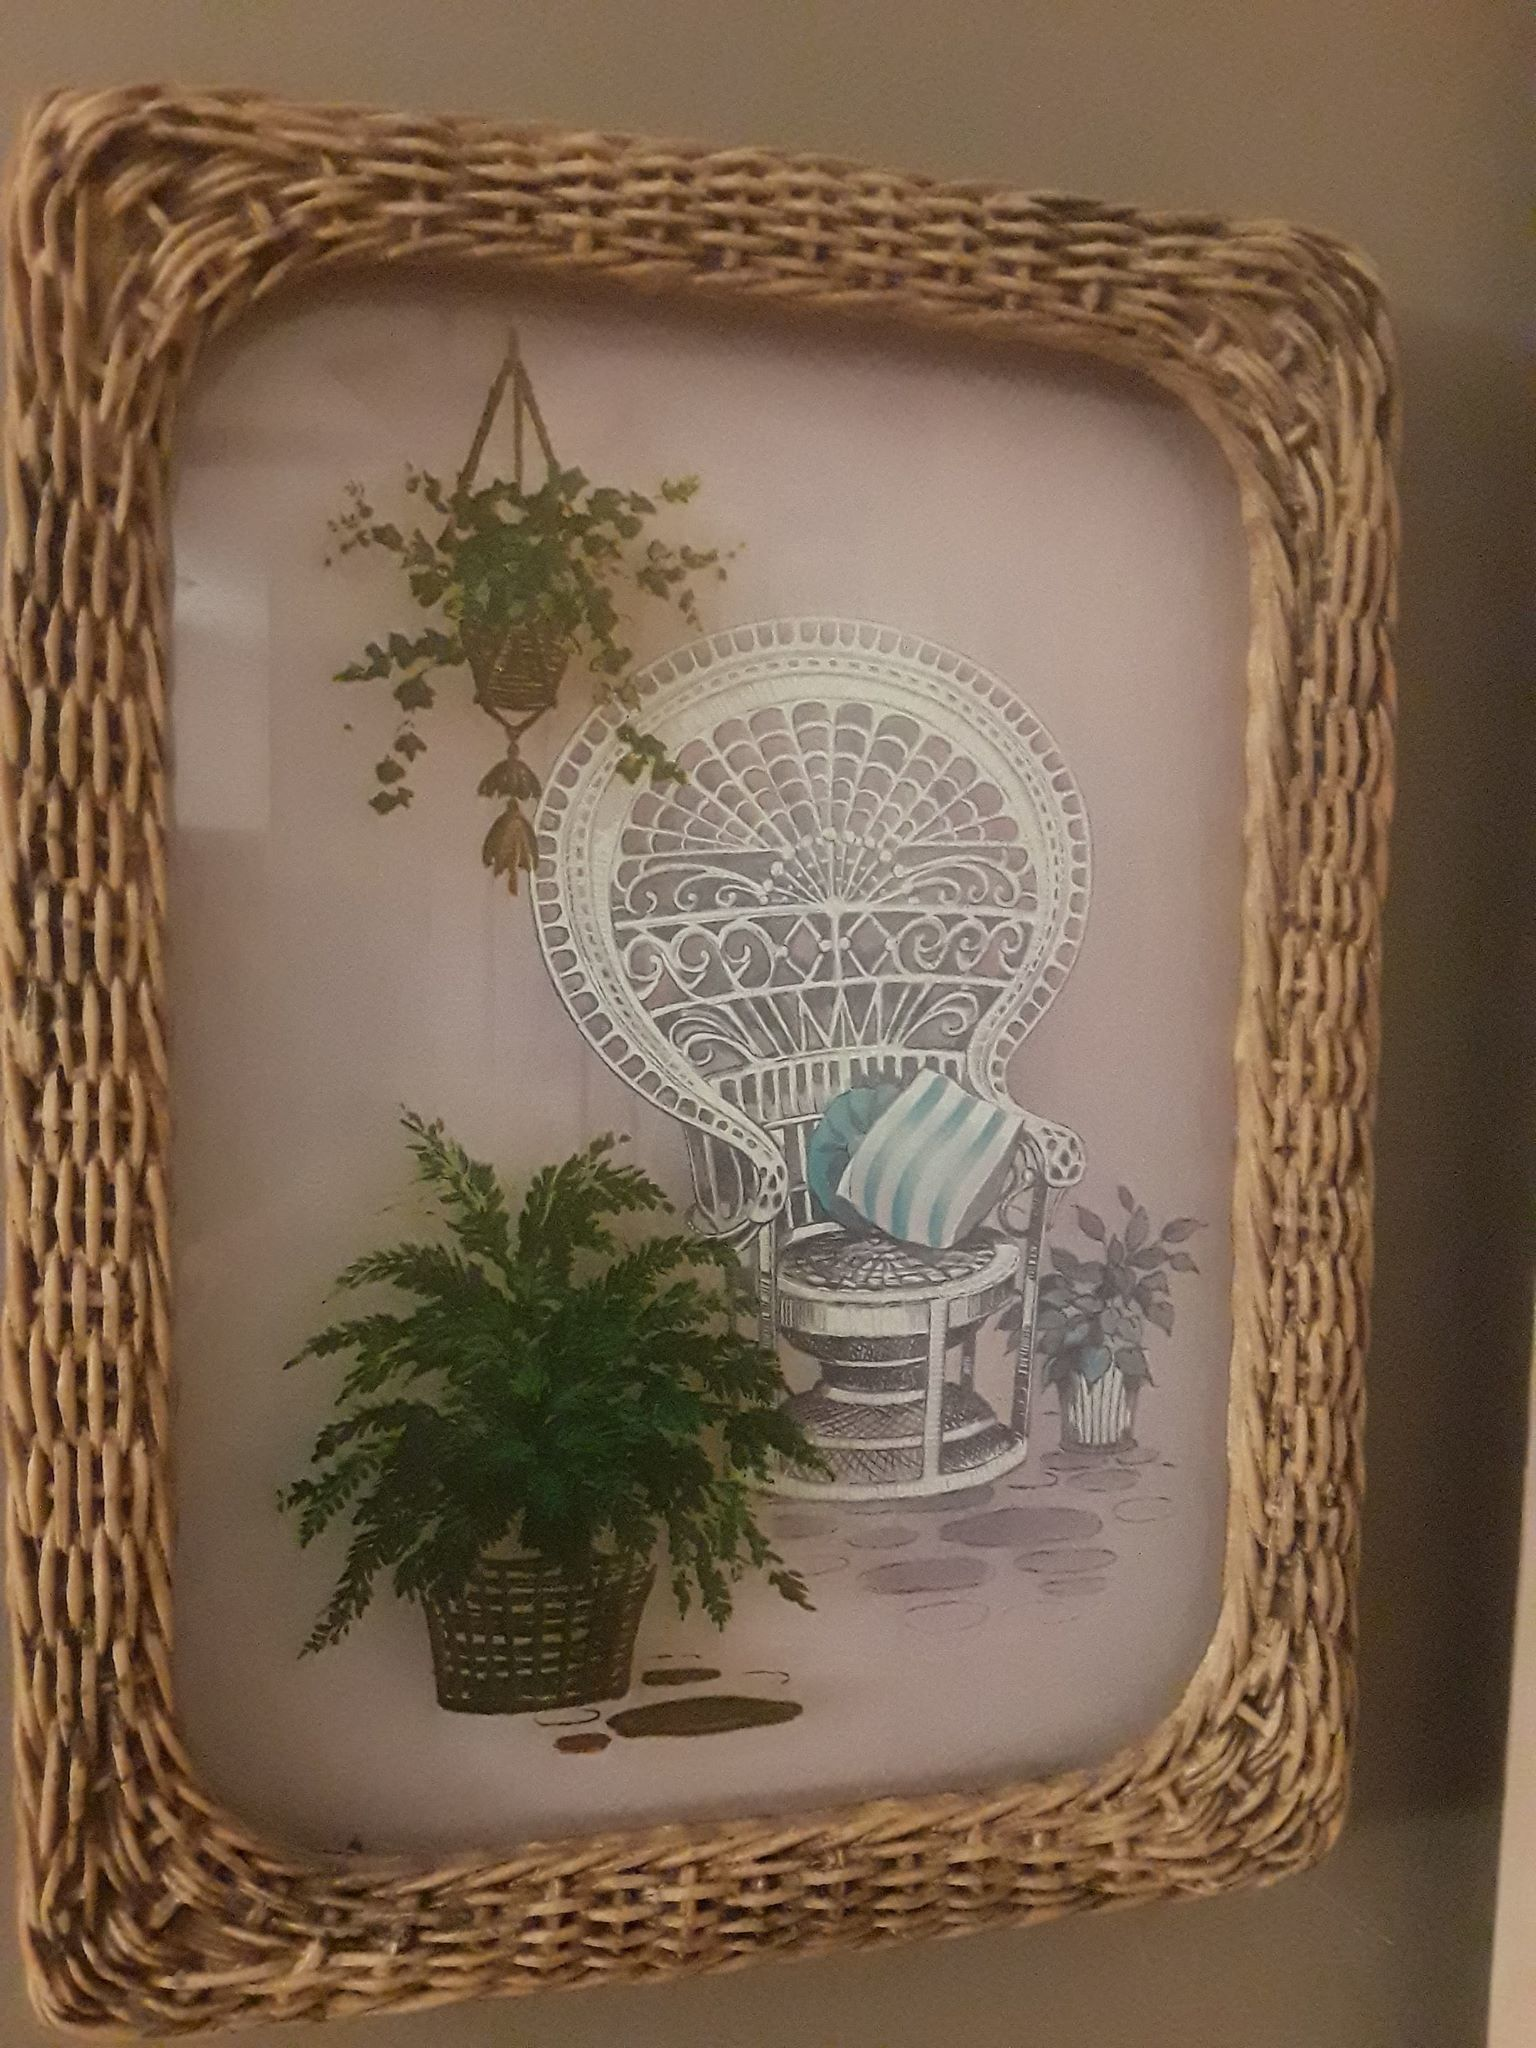 Home Interiors Catalog Items You Probably Still Own It S A Southern Thing